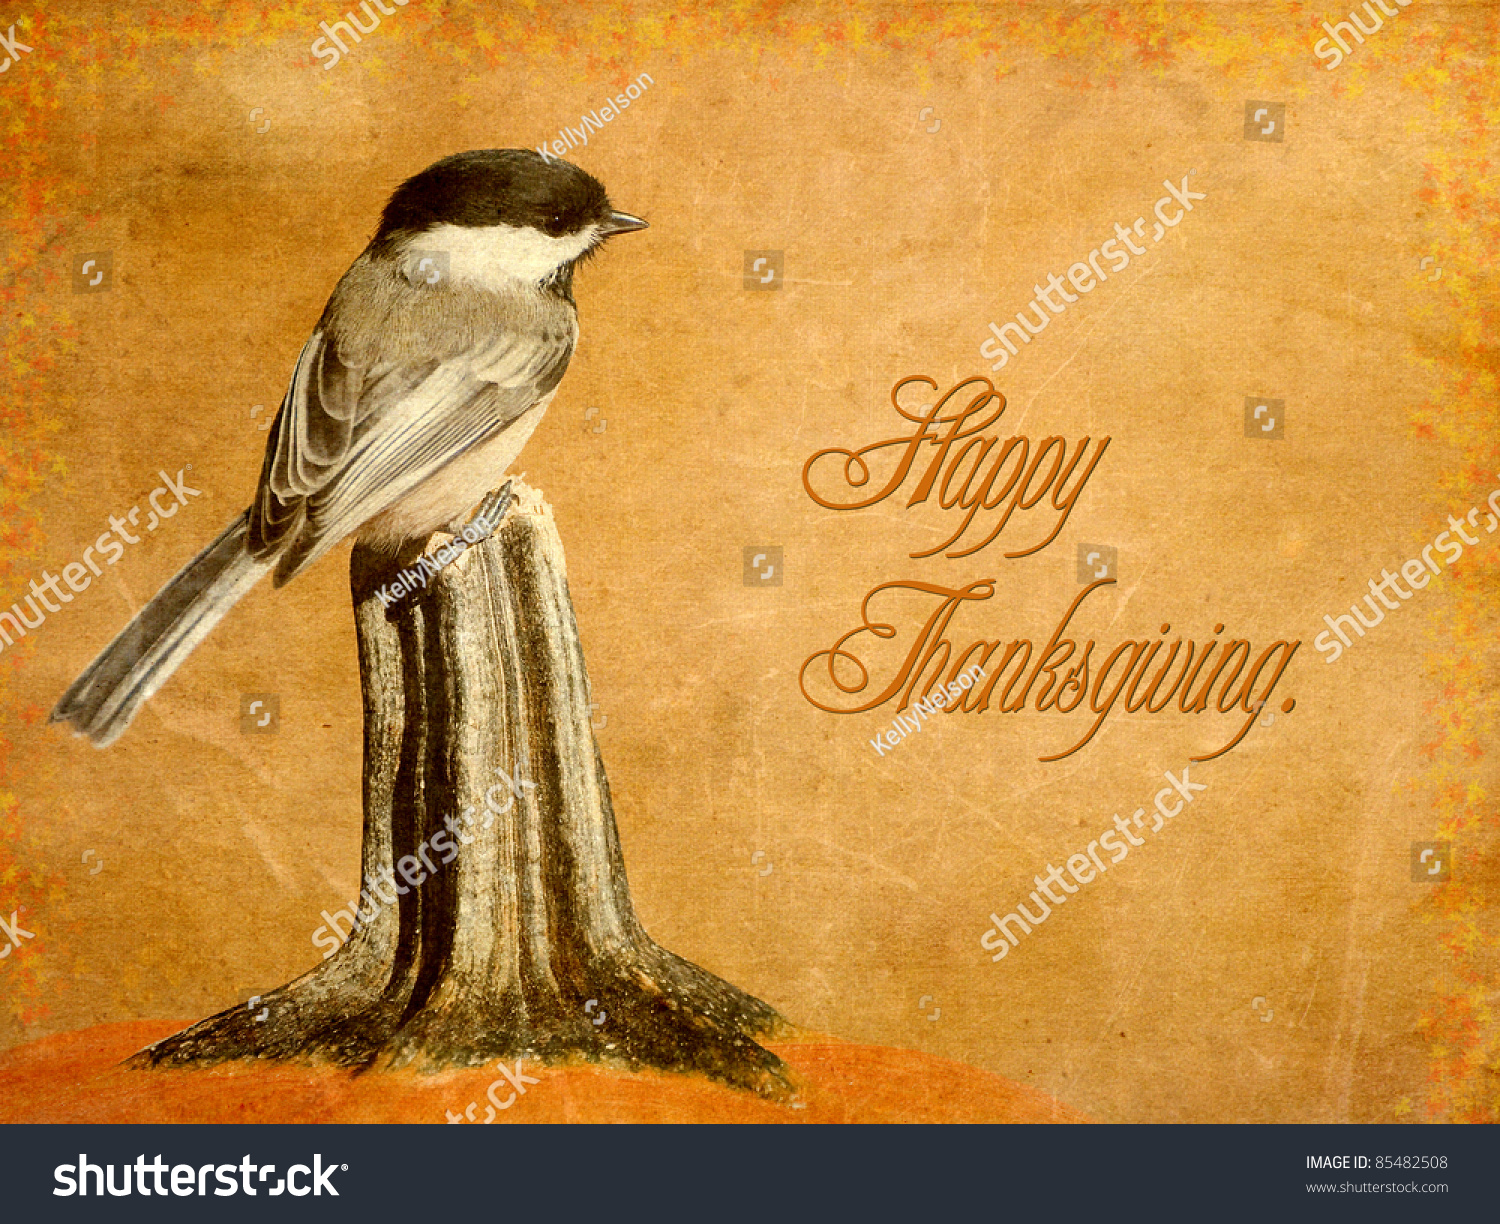 Vintage Thanksgiving Card Featuring An Adorable Chickadee Perched On A Pumpkin With Autumn Leaf Border